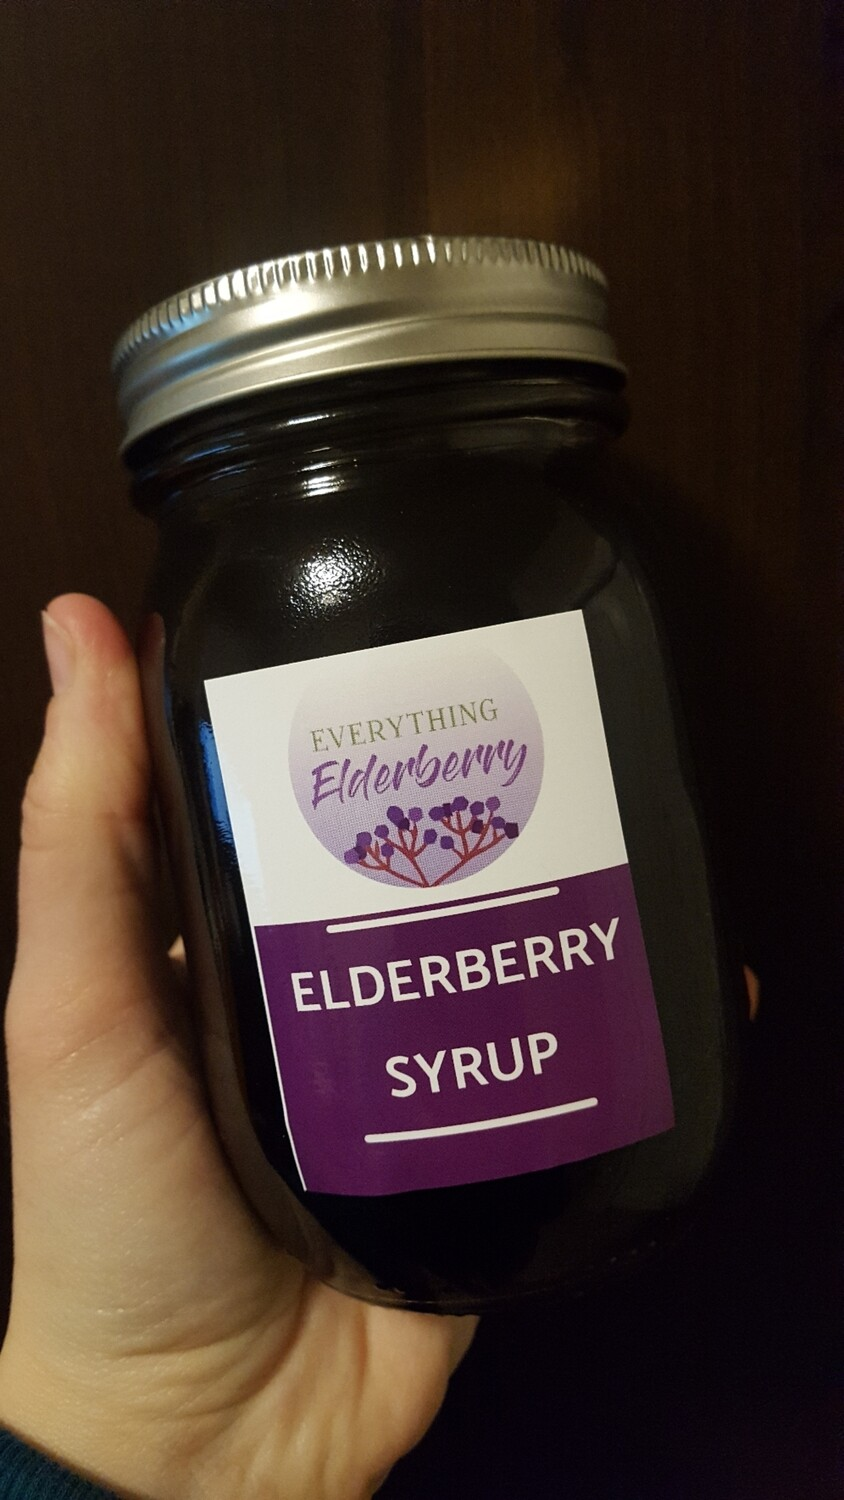 16oz Elderberry Syrup